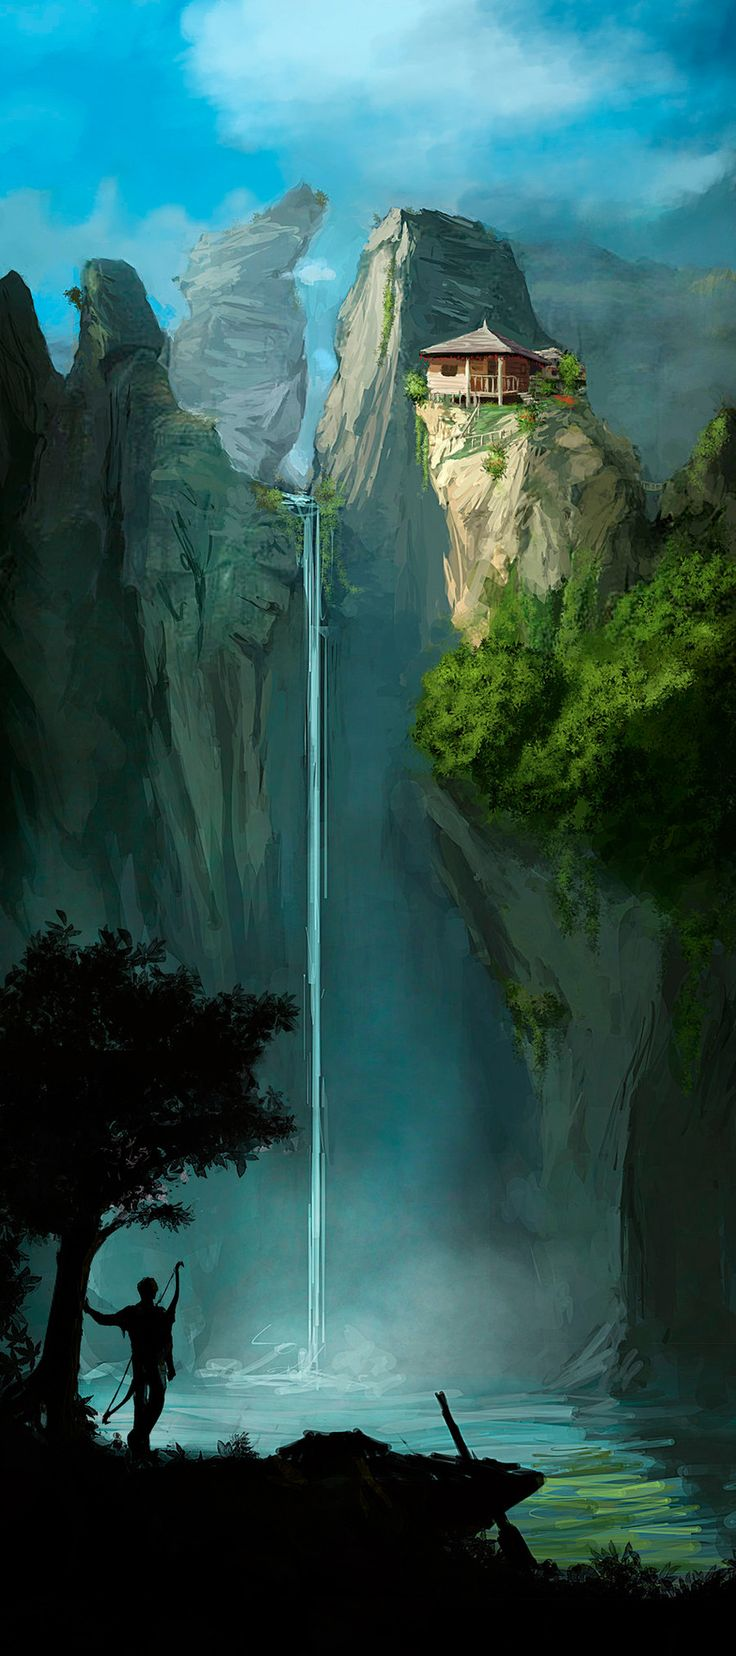 Look, kids! Archery can take you to the coolest places! Art by Razvan Negrea